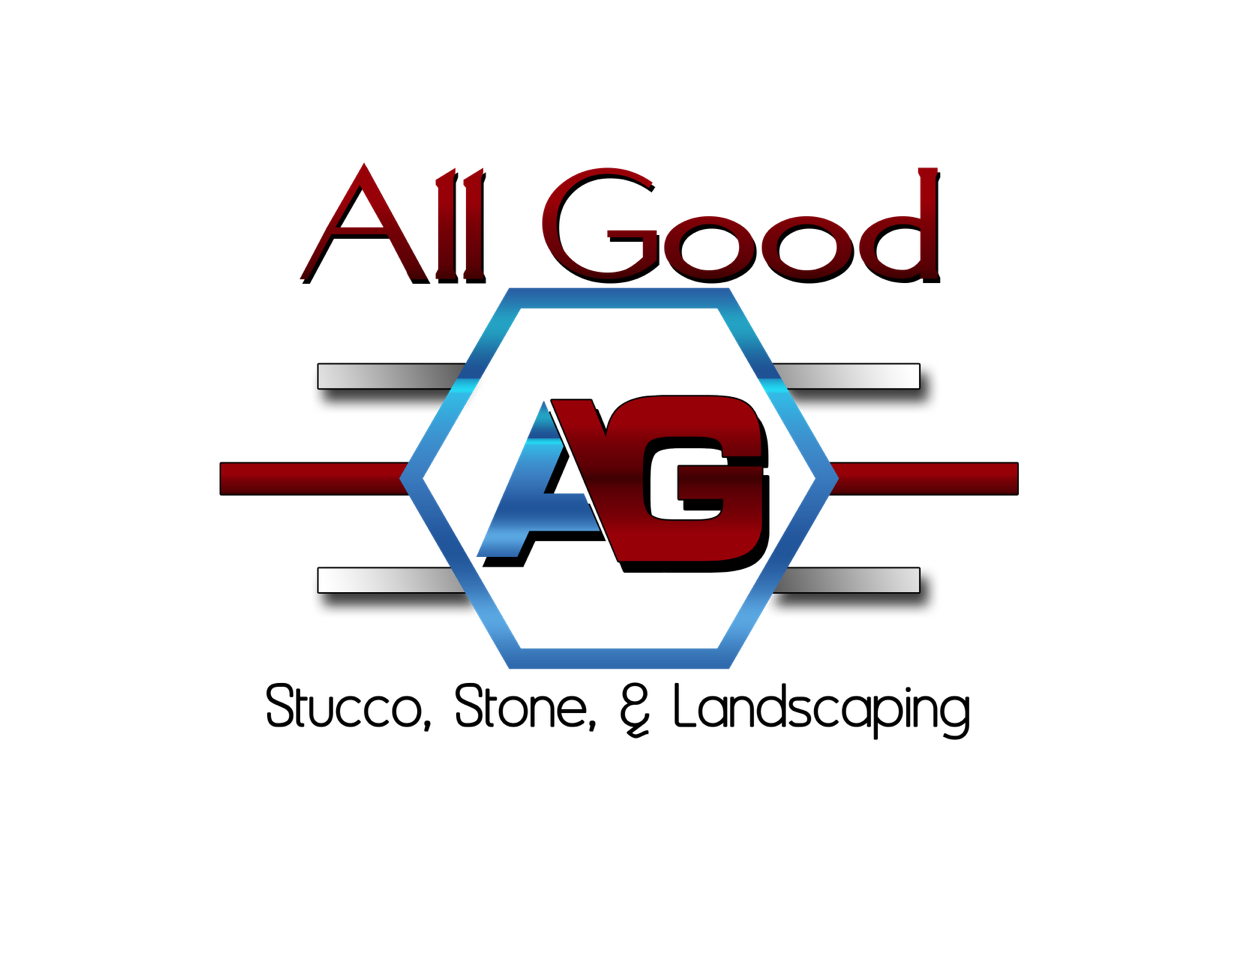 All Good Stucco, Stone & Landscaping logo